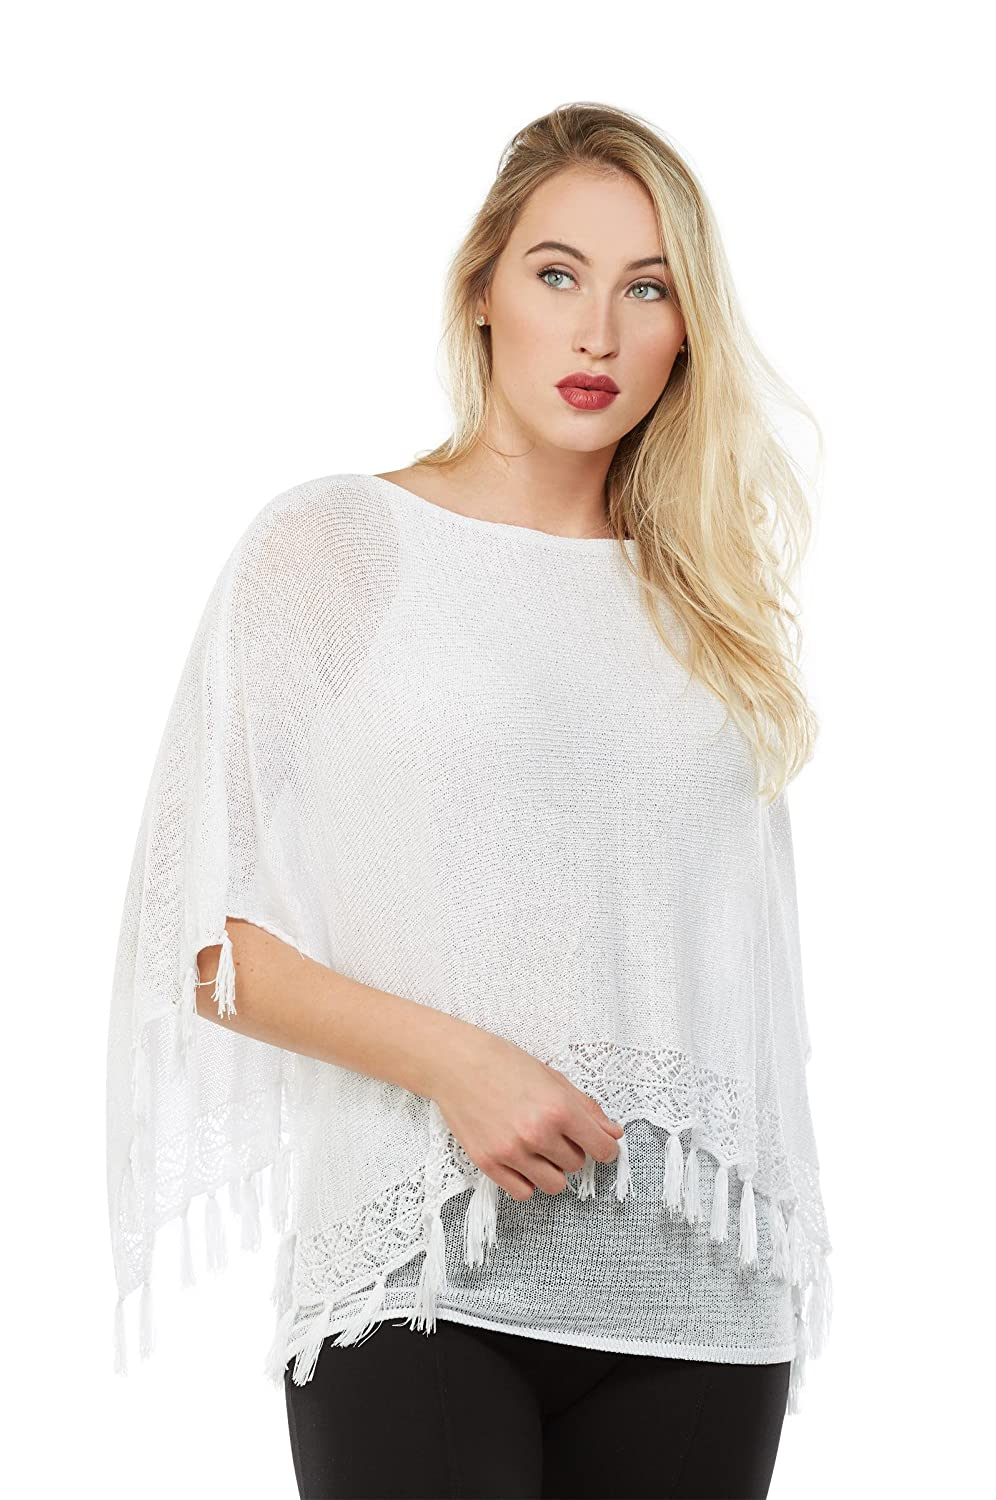 Plus Tassel Trim Poncho Top Nygard 3B491746